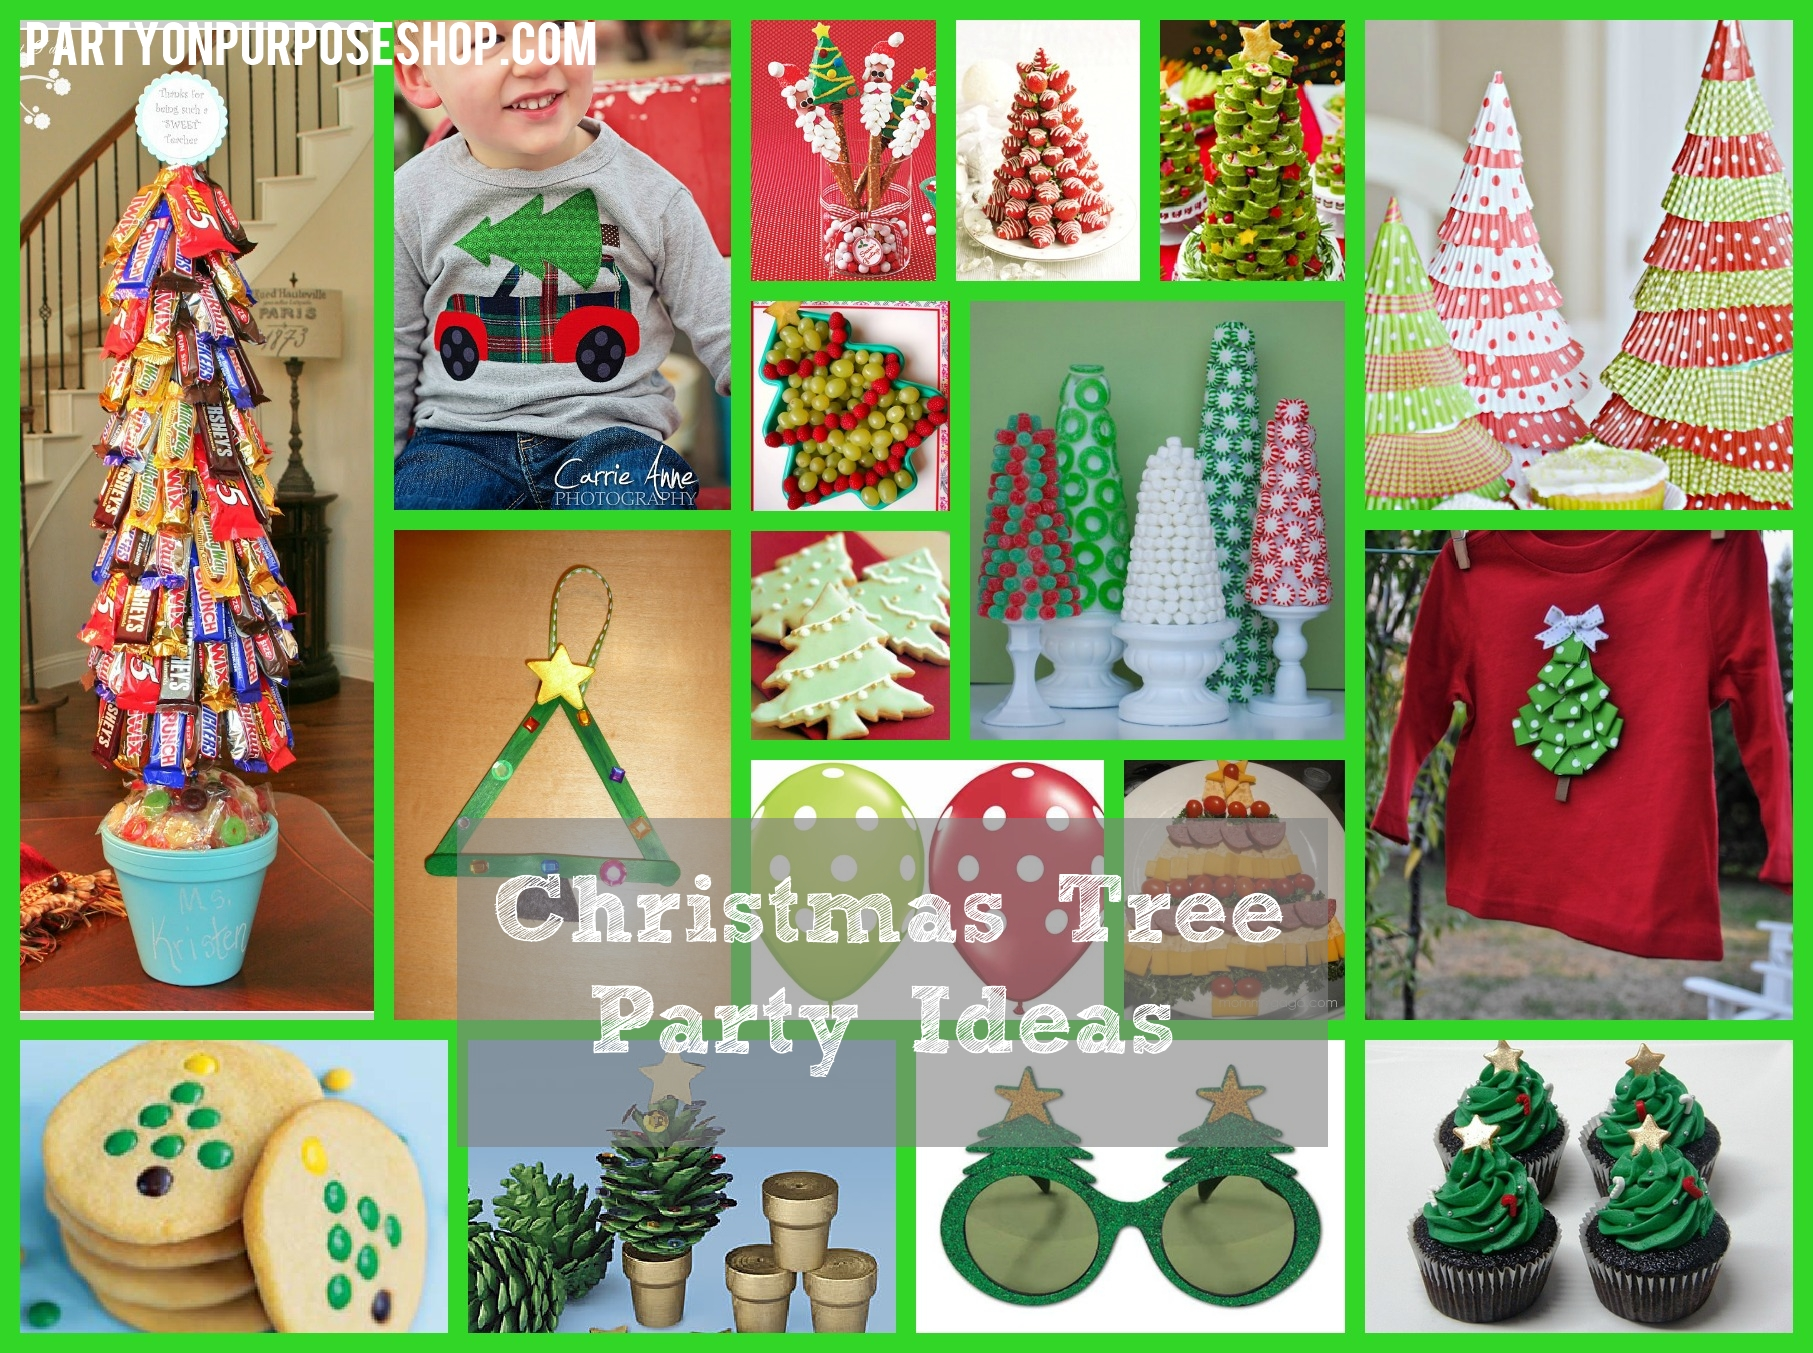 10 Best Christmas Party Ideas For Work christmas tree party ideas party on purpose 2020